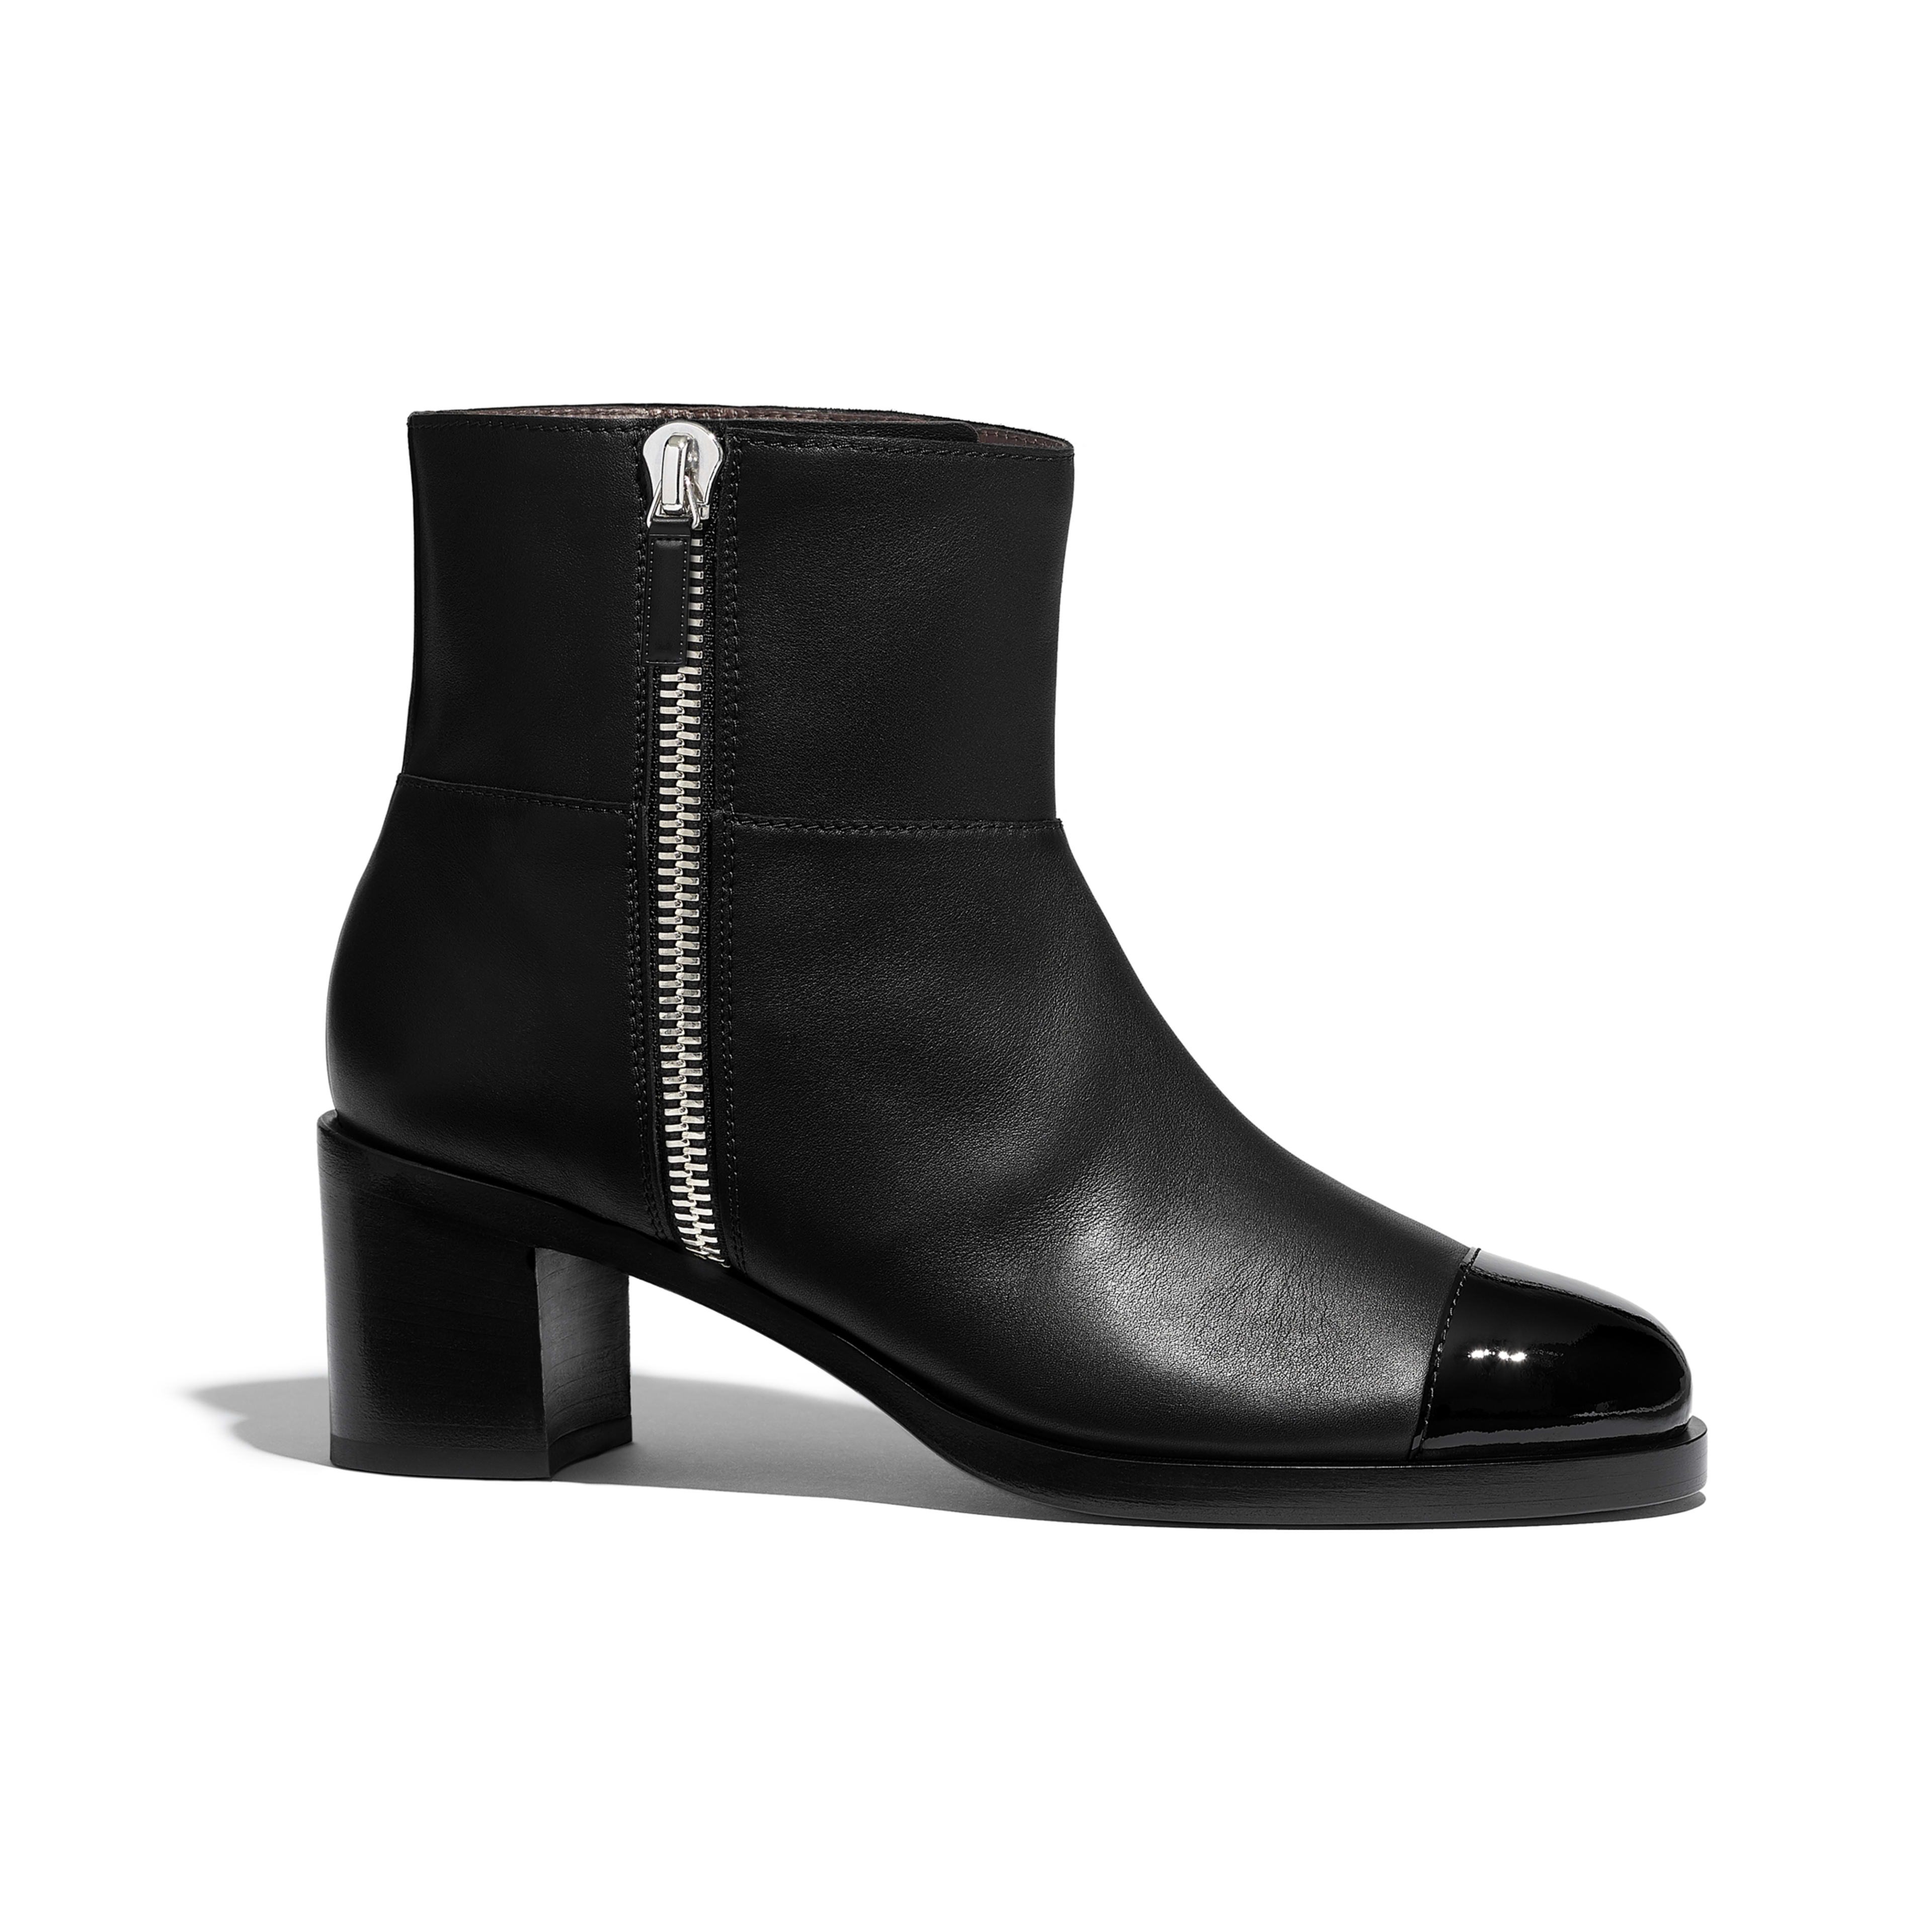 Ankle Boots - Black - Calfskin & Patent Calfskin - Default view - see full sized version